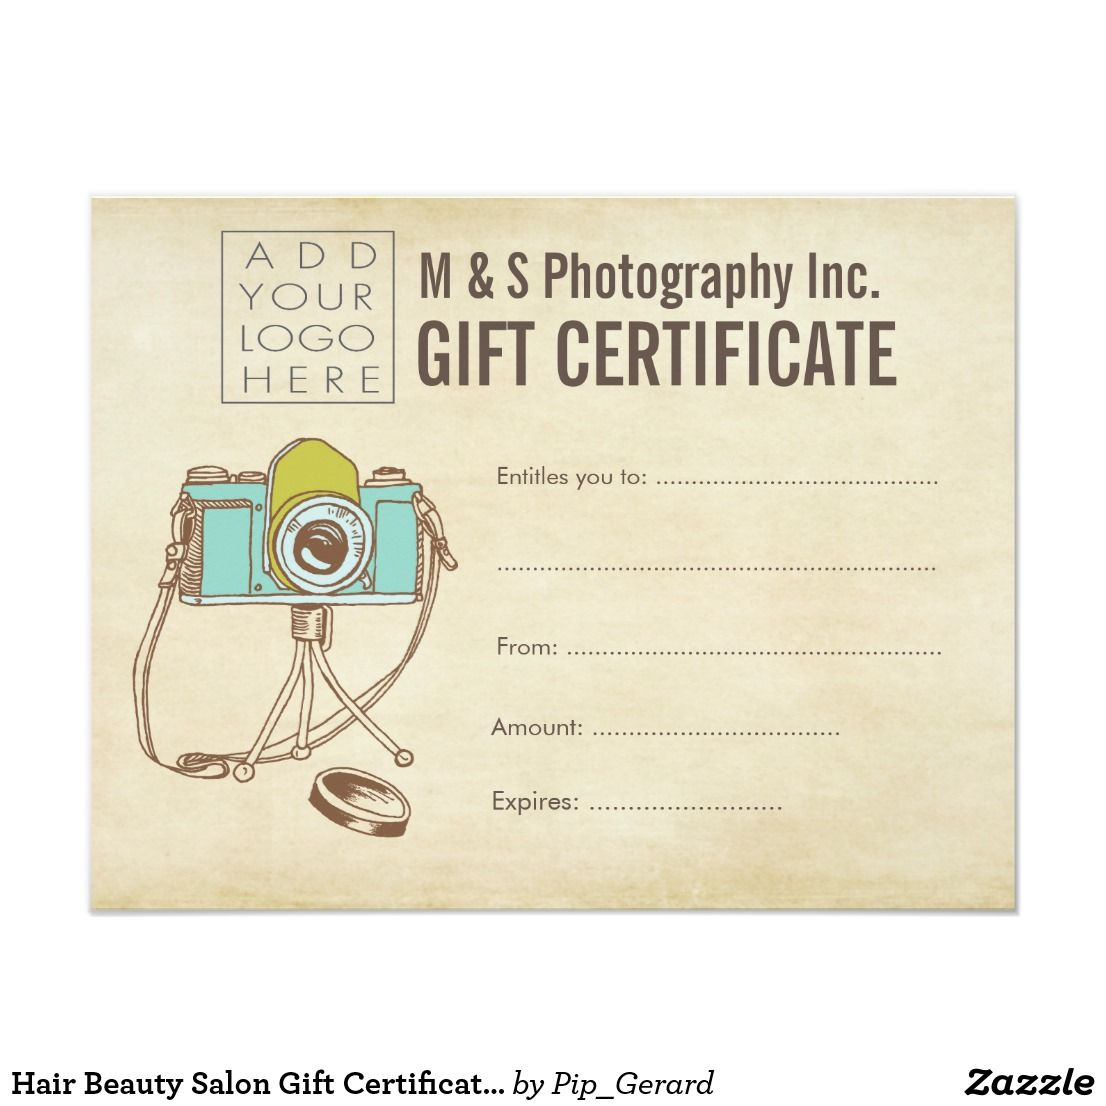 Hair Beauty Salon Gift Certificate Template  Zazzle.com in 15